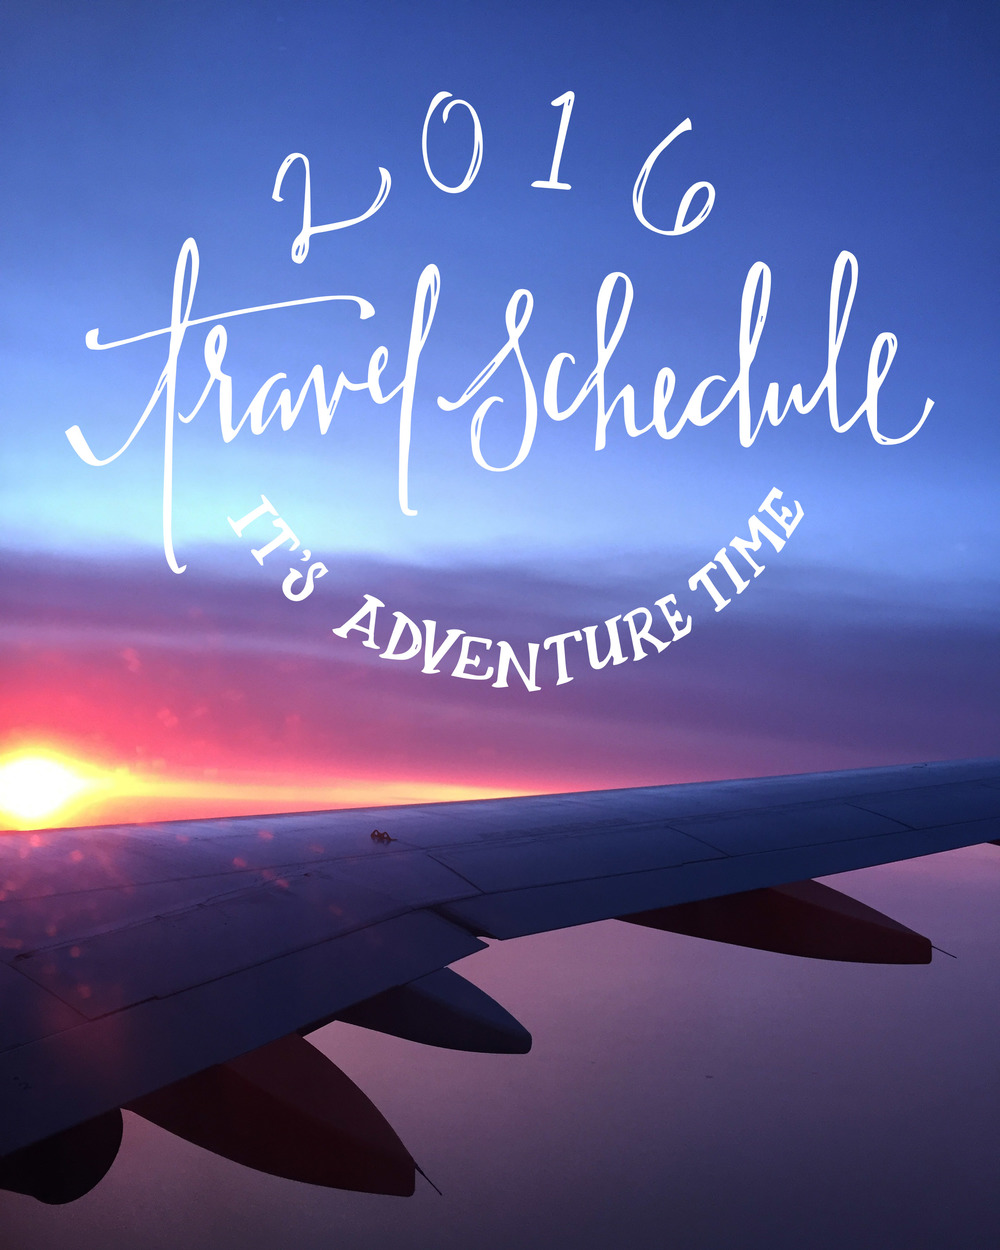 Our 2016 Travel Schedule | Sea of Atlas